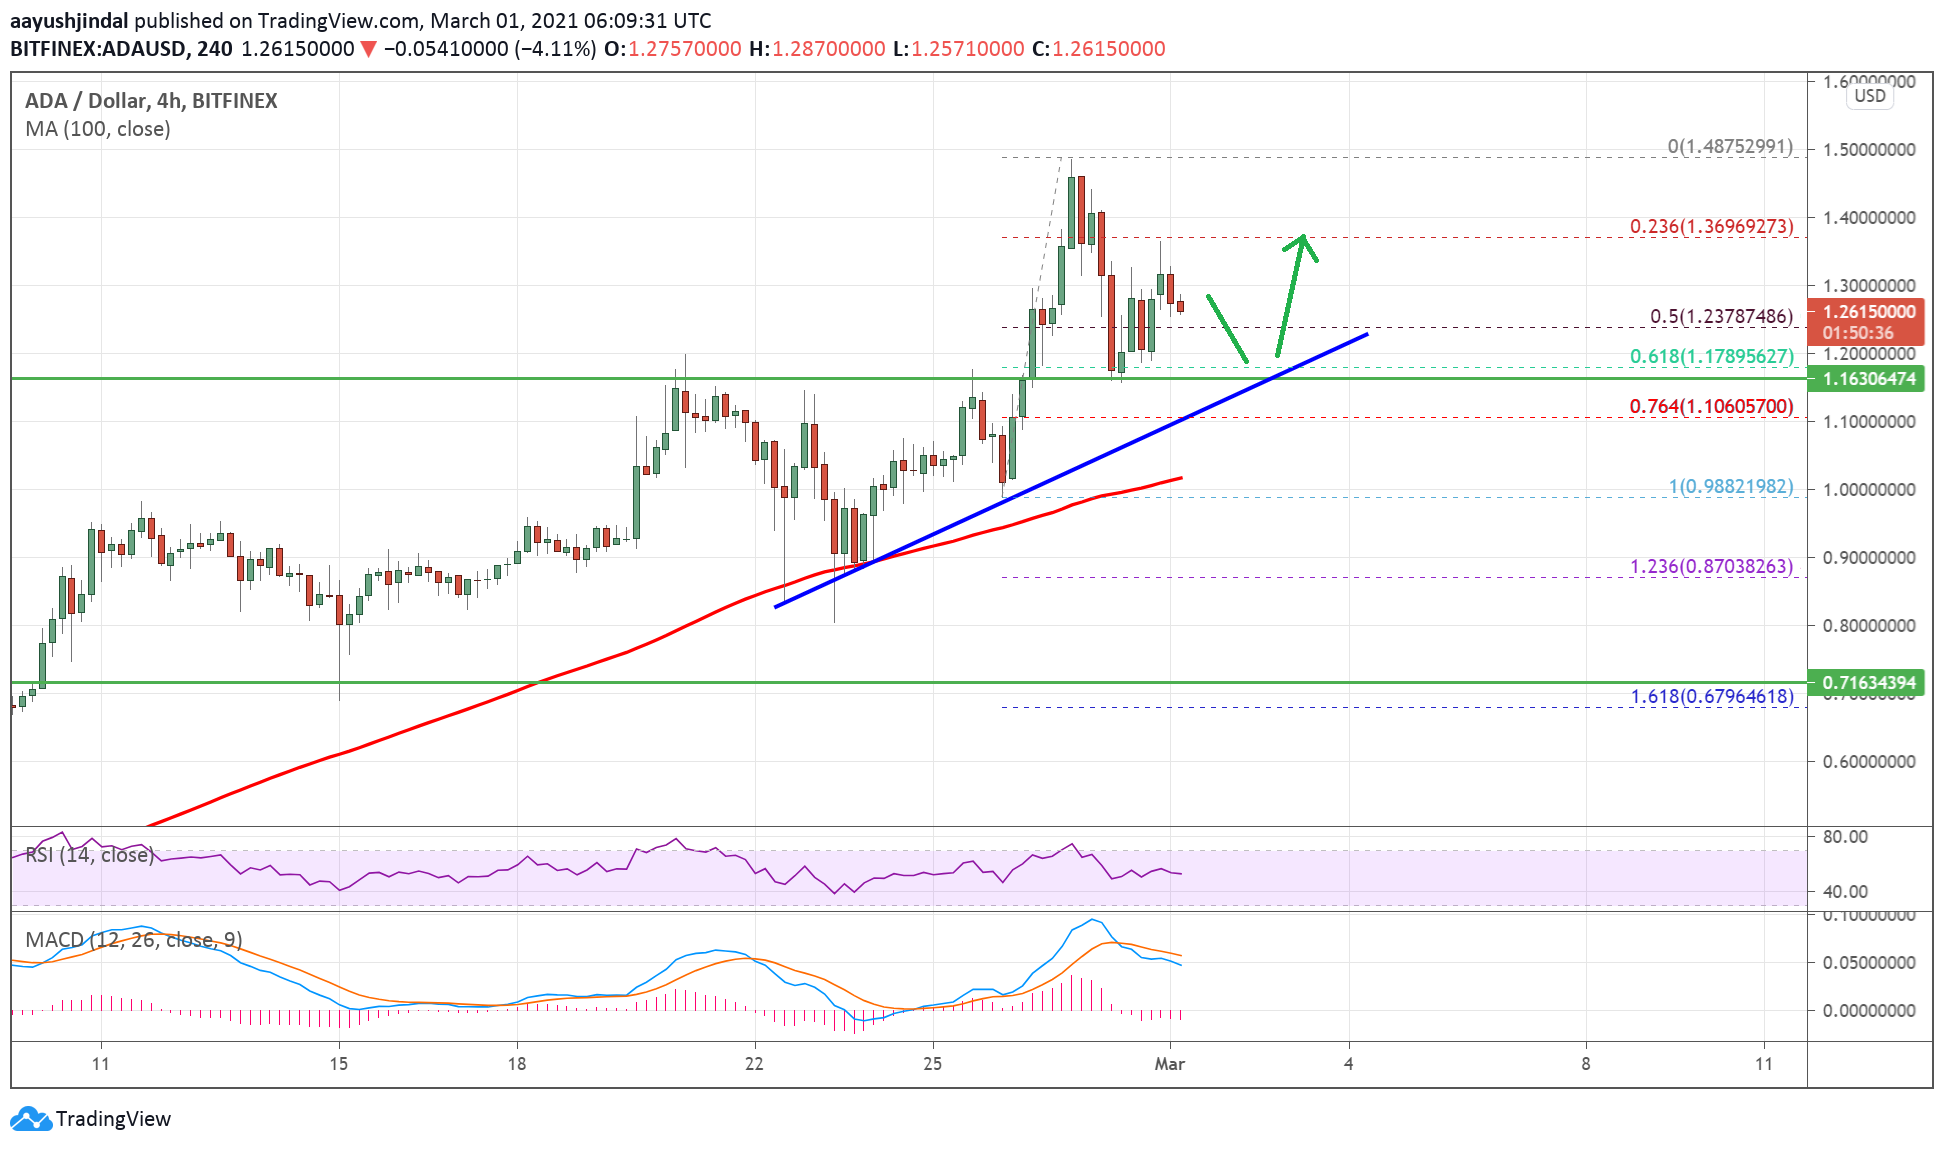 Charted: Cardano (ADA) Holding Crucial Support, Why It Could Surge Again